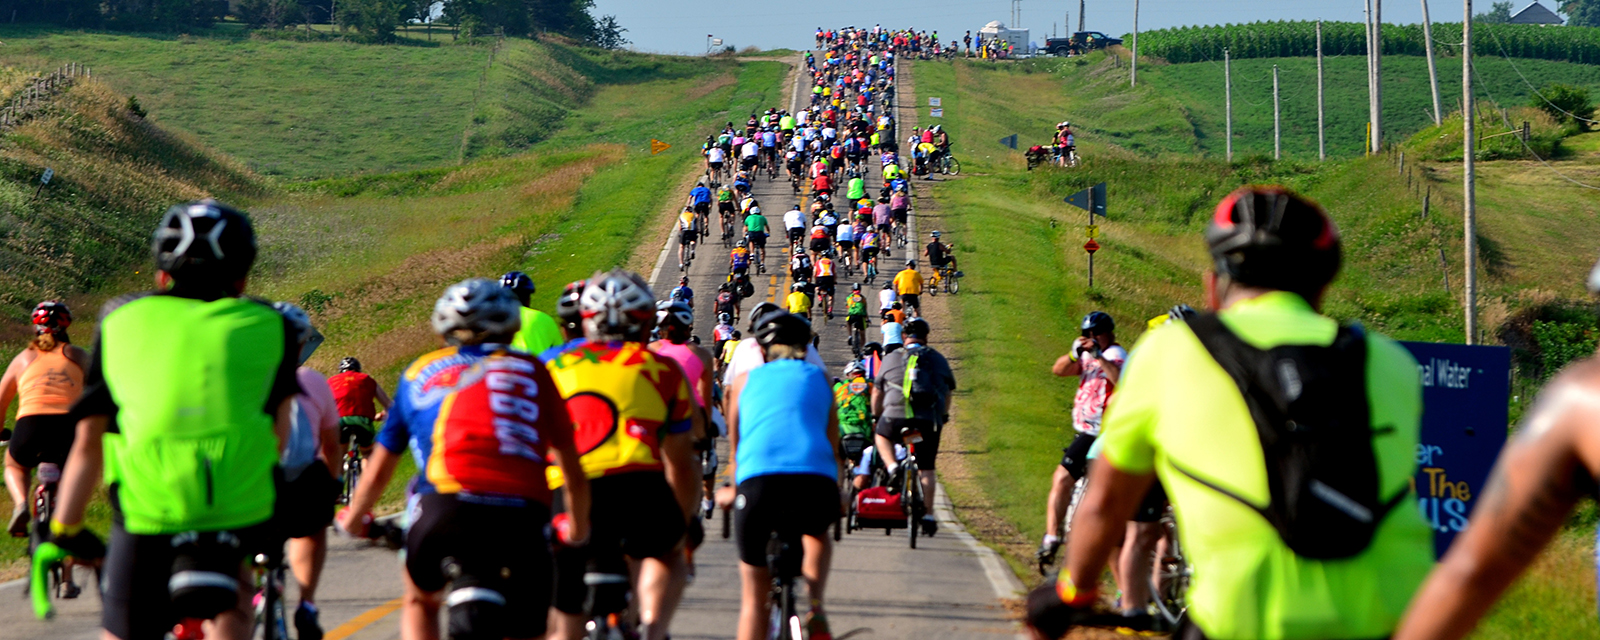 Cyclists climb uphill during a non-competitive bicycle ride in Iowa